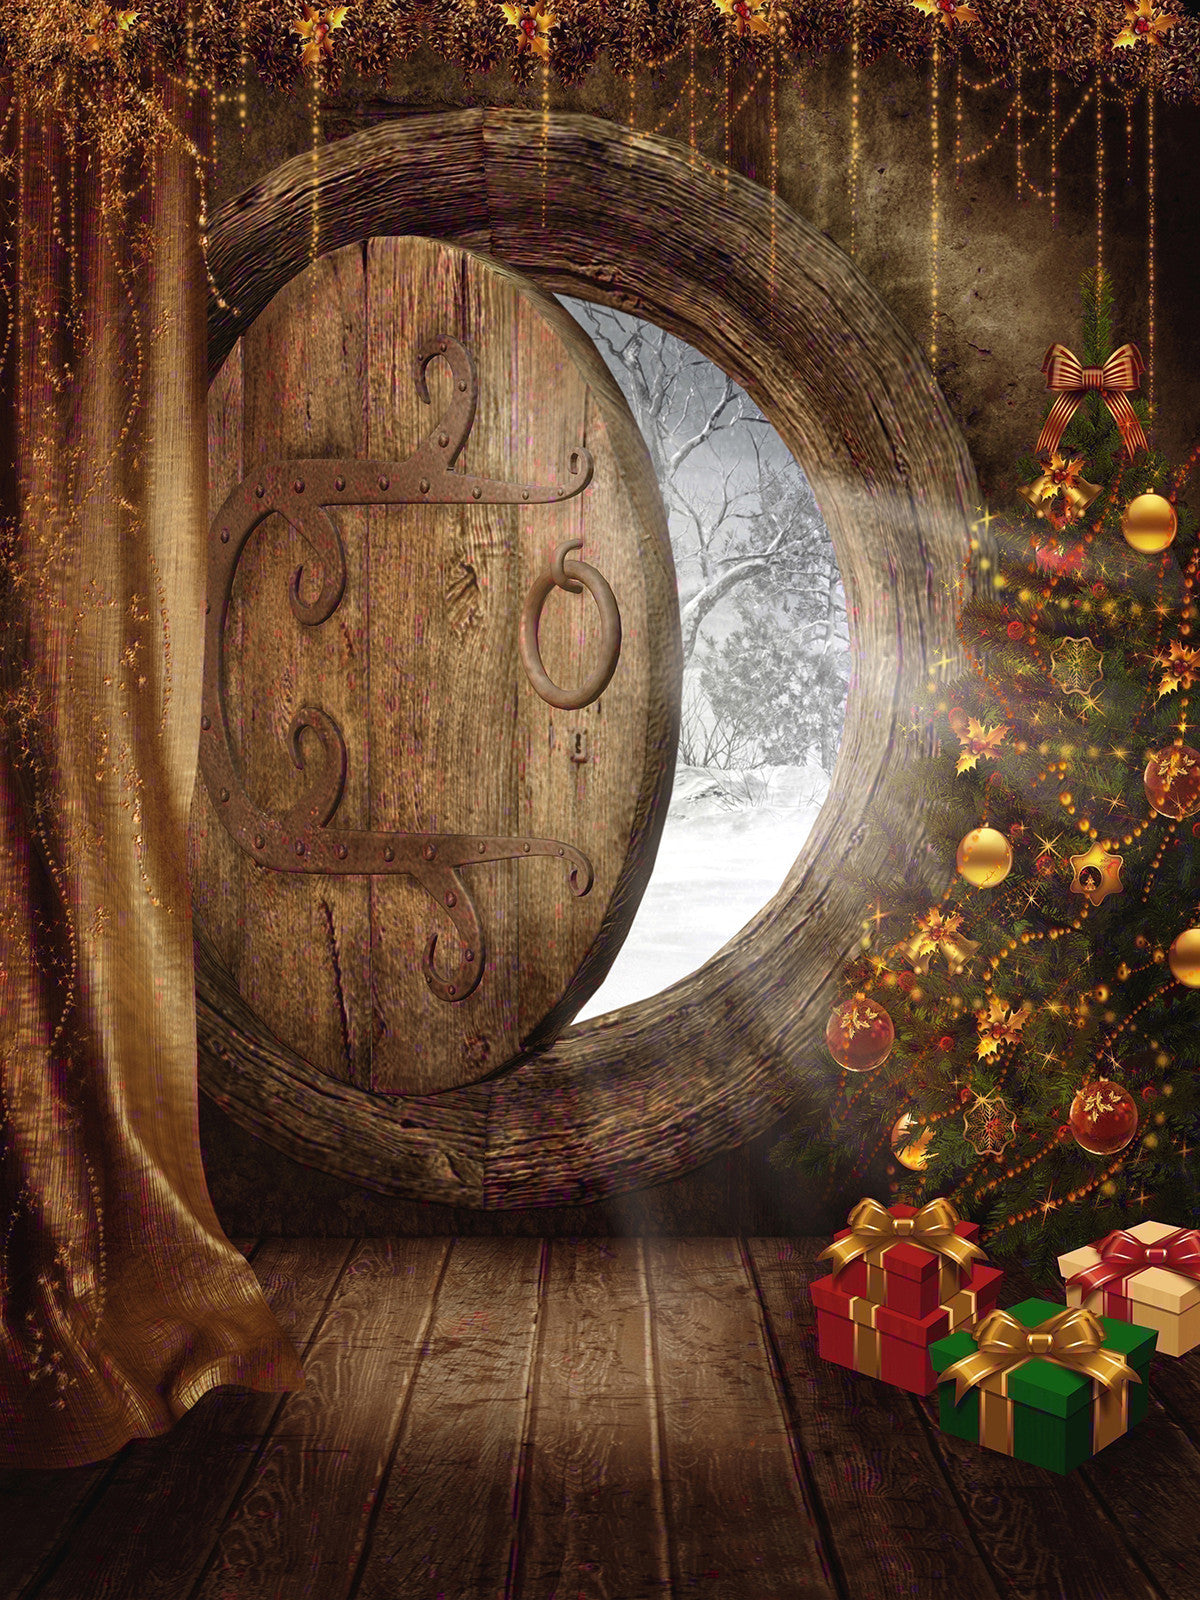 Hobbit Holiday Photo Backdrop / 9440 - DropPlace